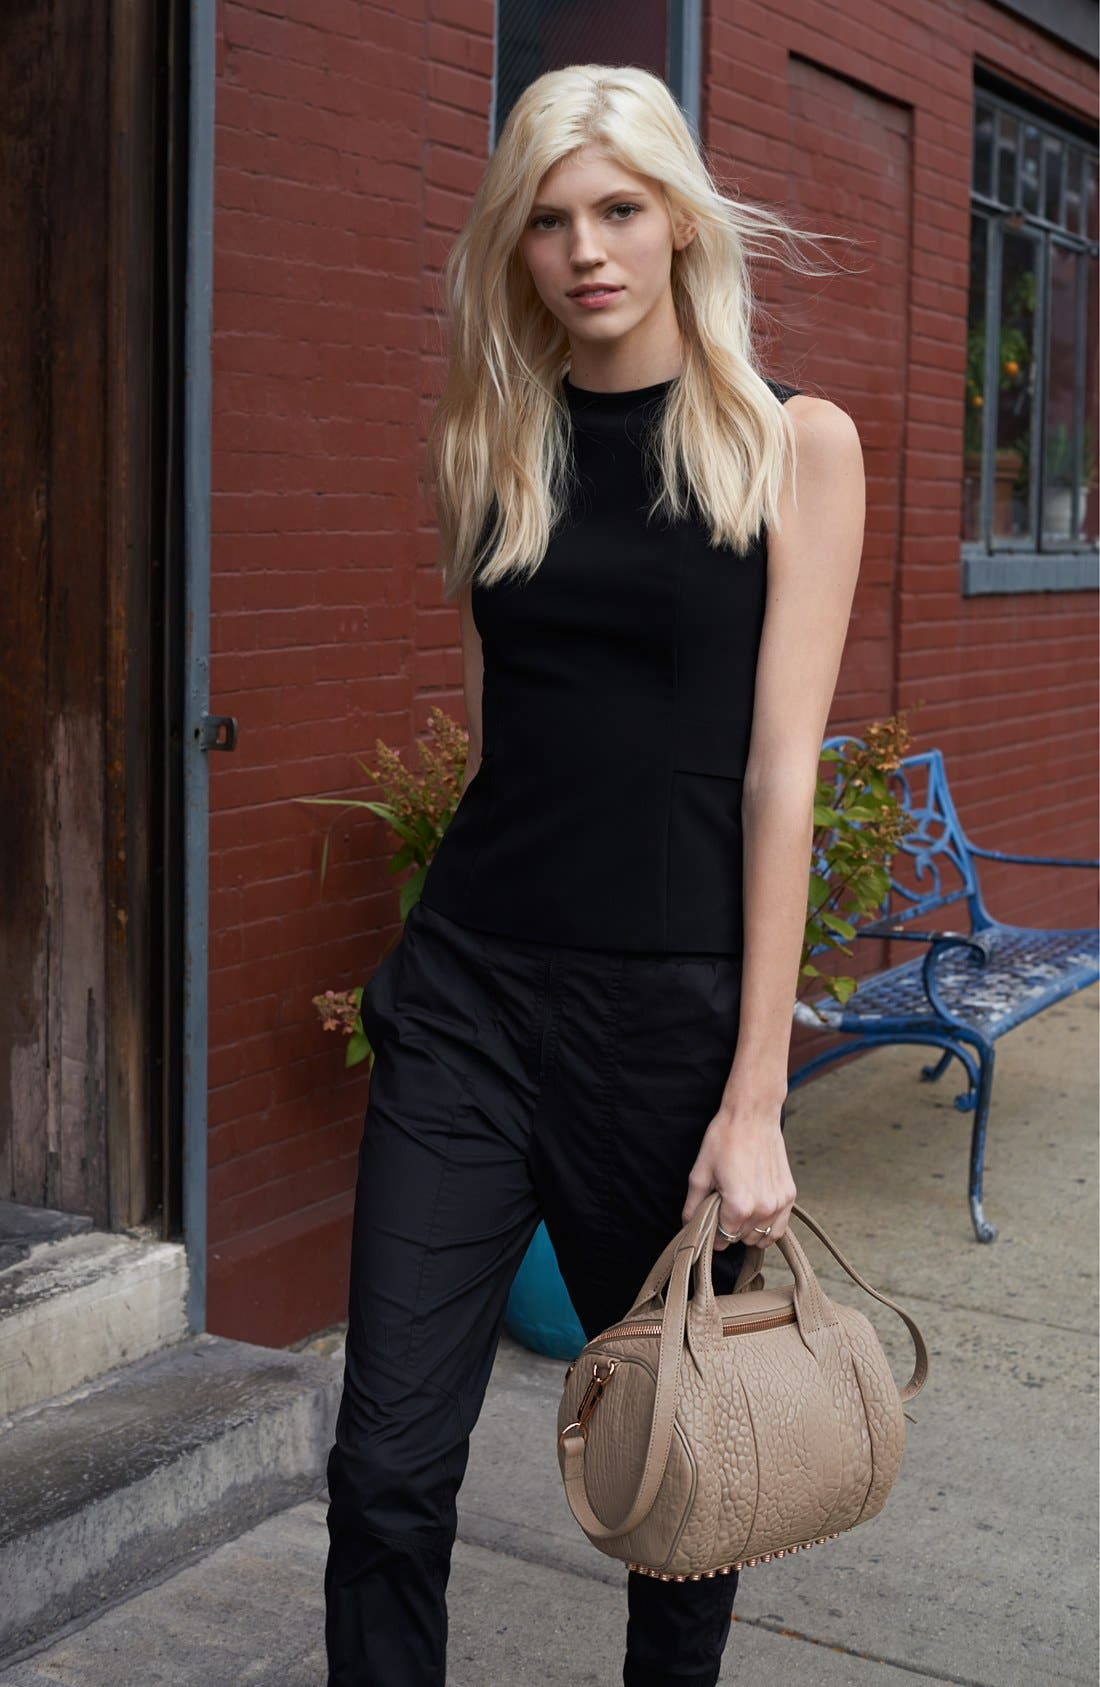 Alternate Image 1 Selected - Alexander Wang Leather Satchel & T by Alexander Wang Techno Shell, Track Pants